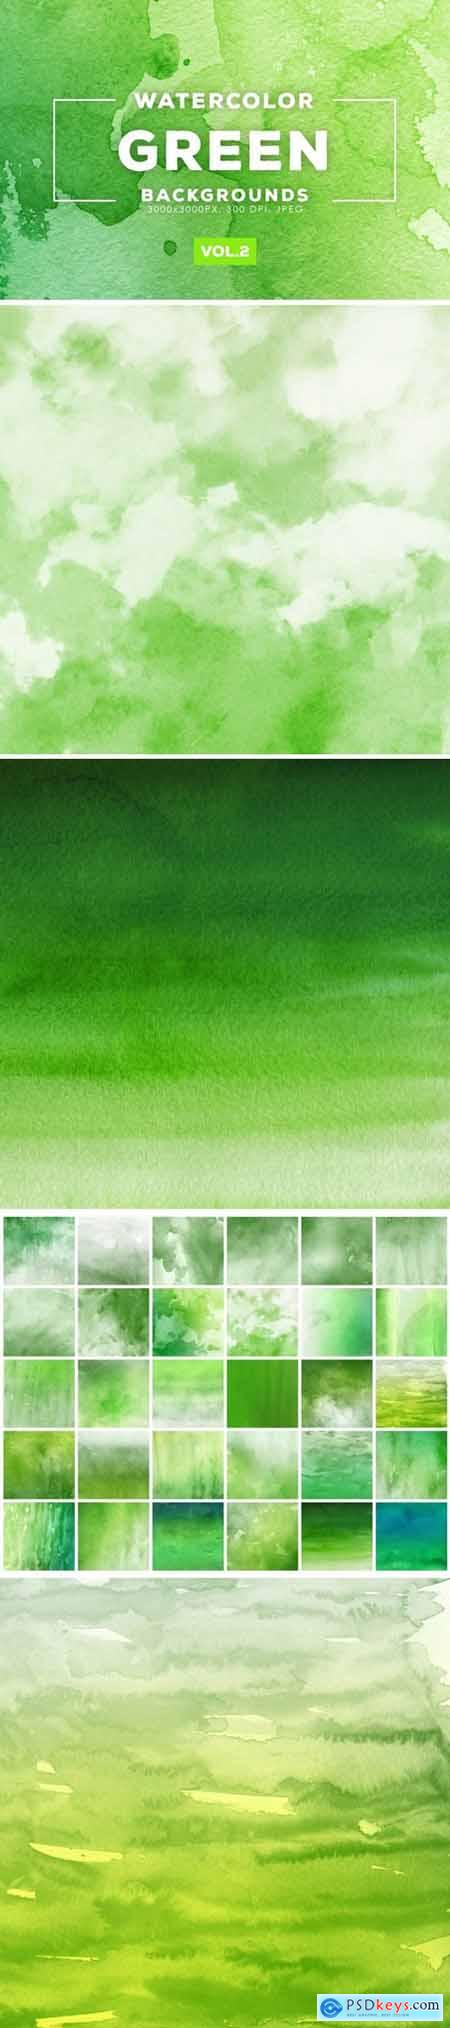 Watercolor Green Backgrounds Vol.2